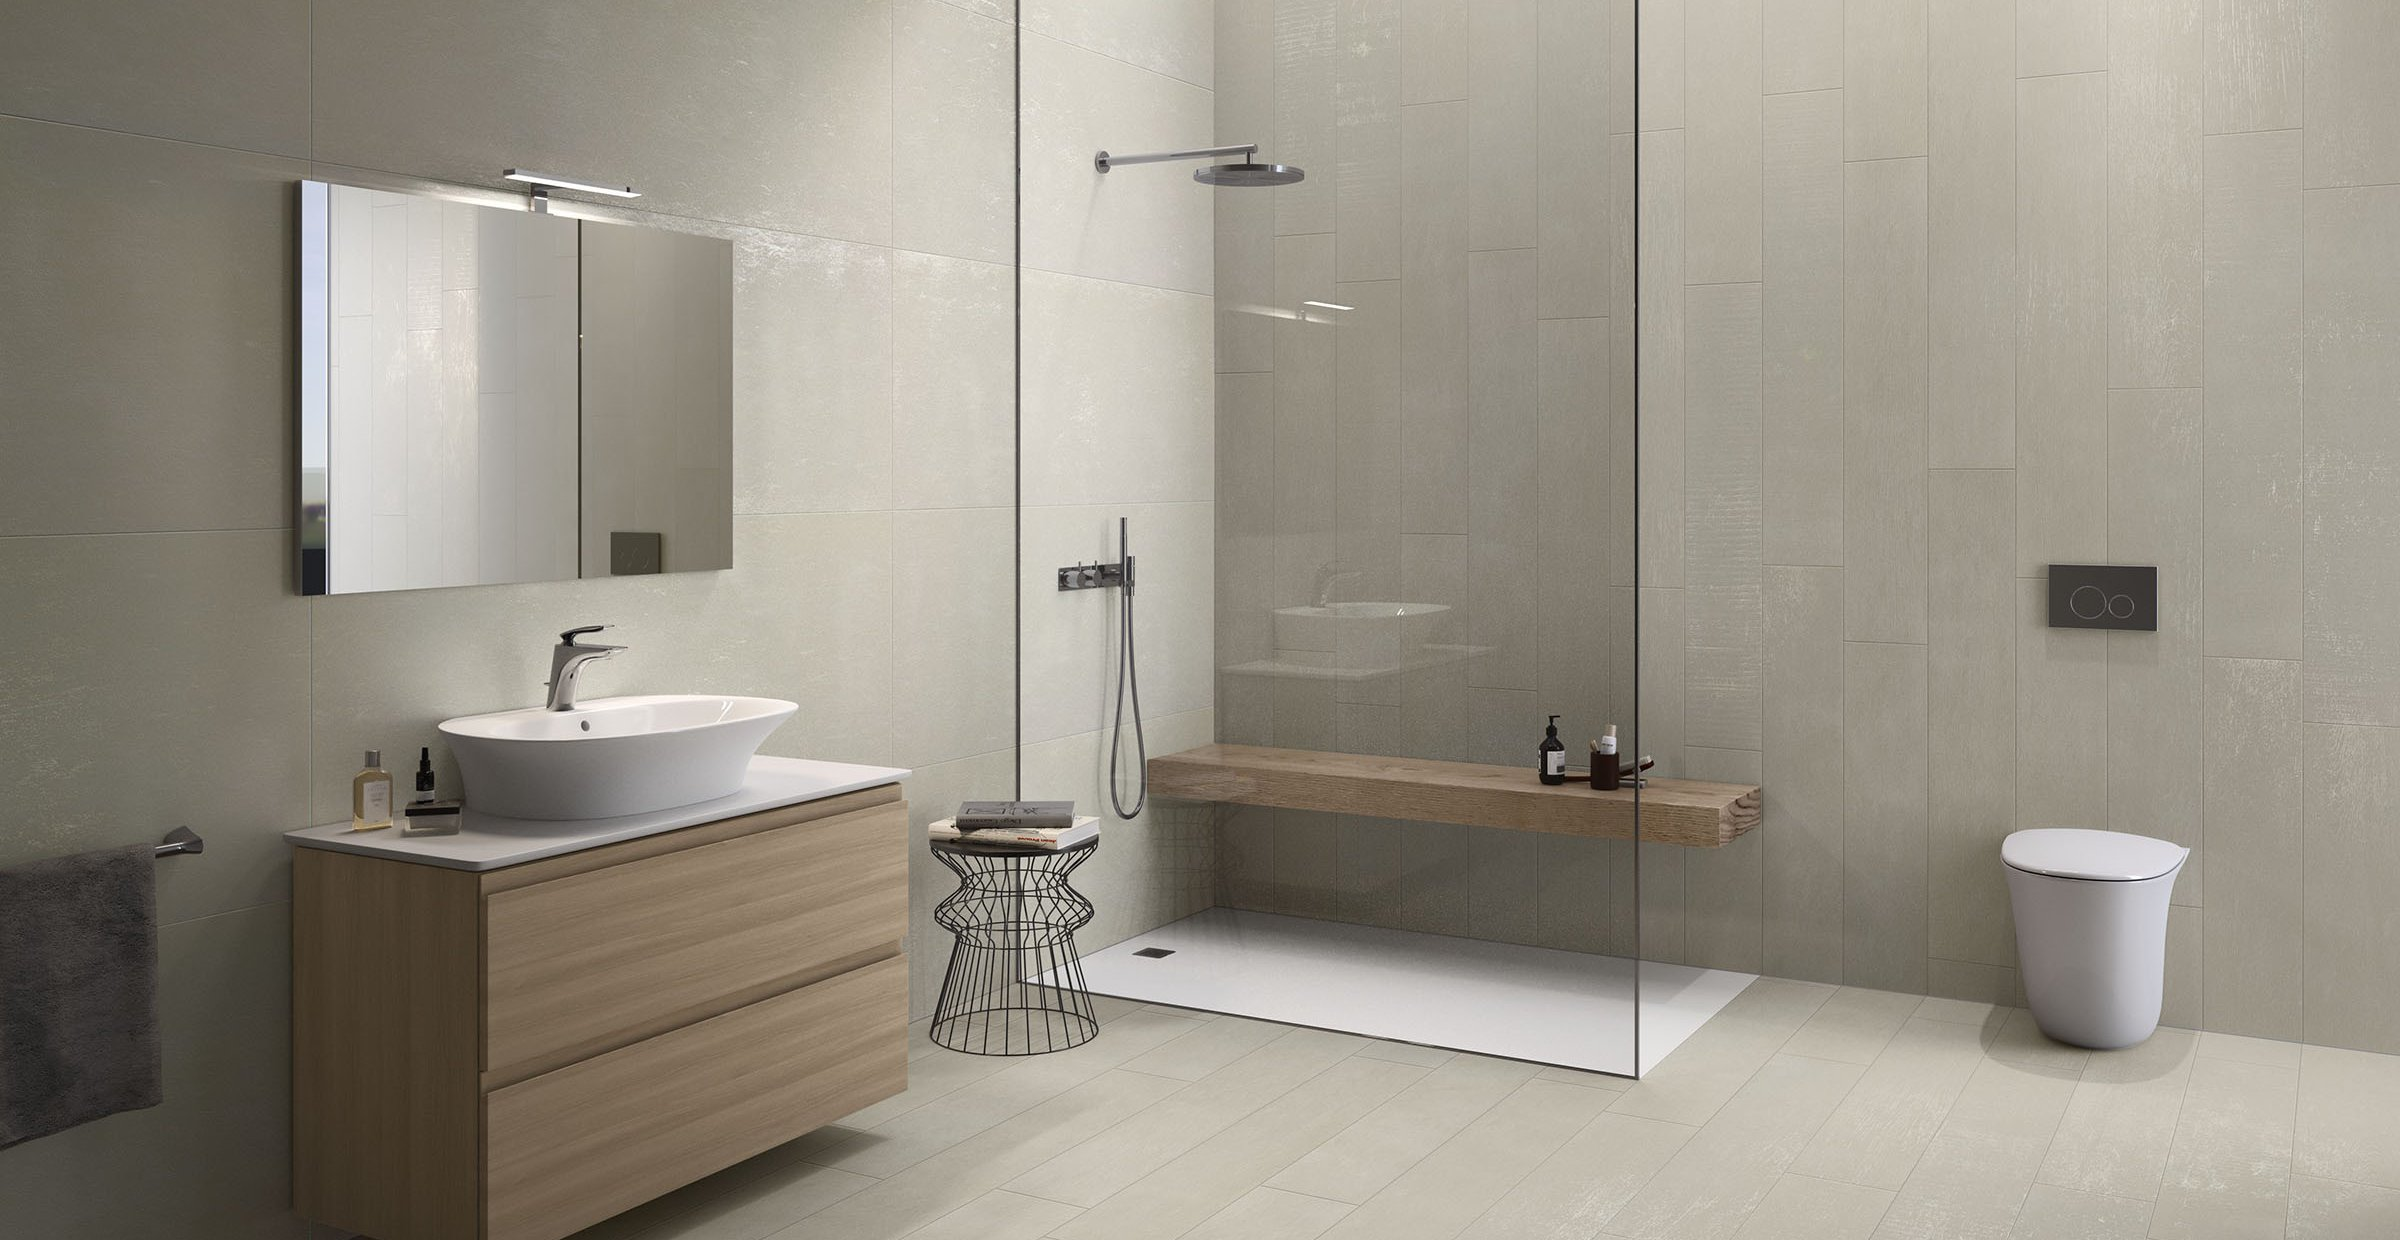 M project wood Beige tiles Modern style Bathroom